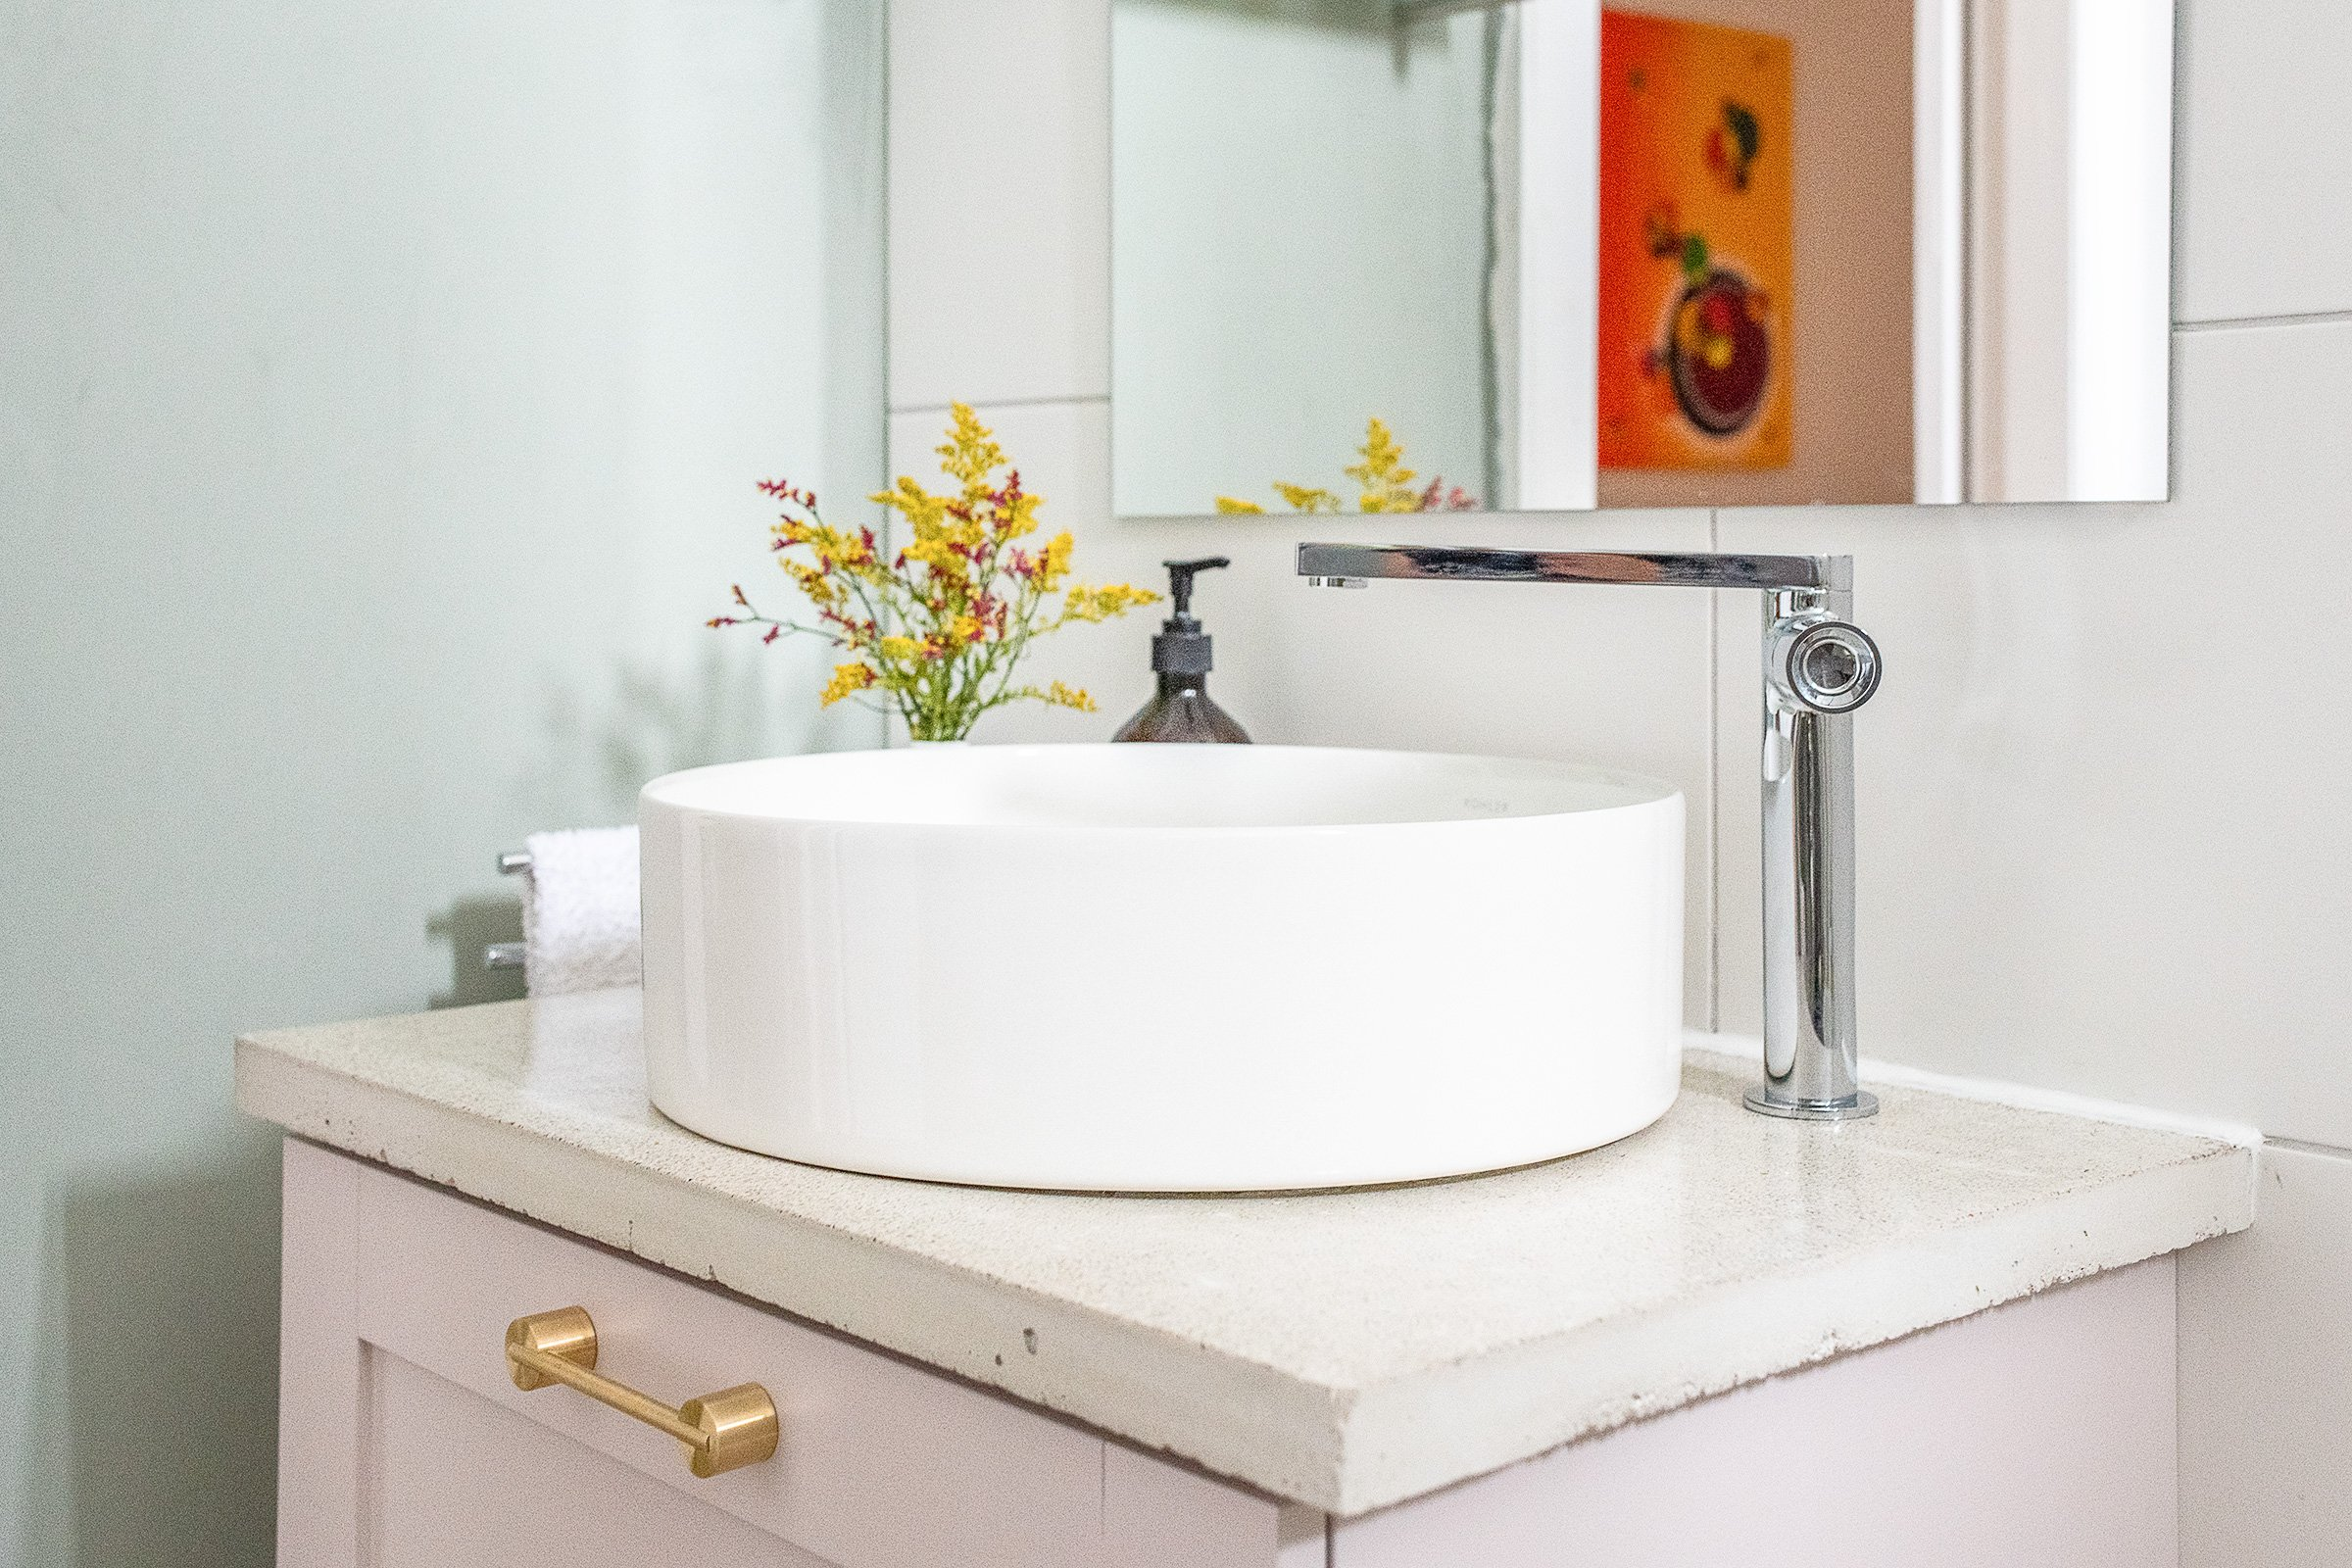 How To Install A Tap & Washbasin | Little House On The Corner